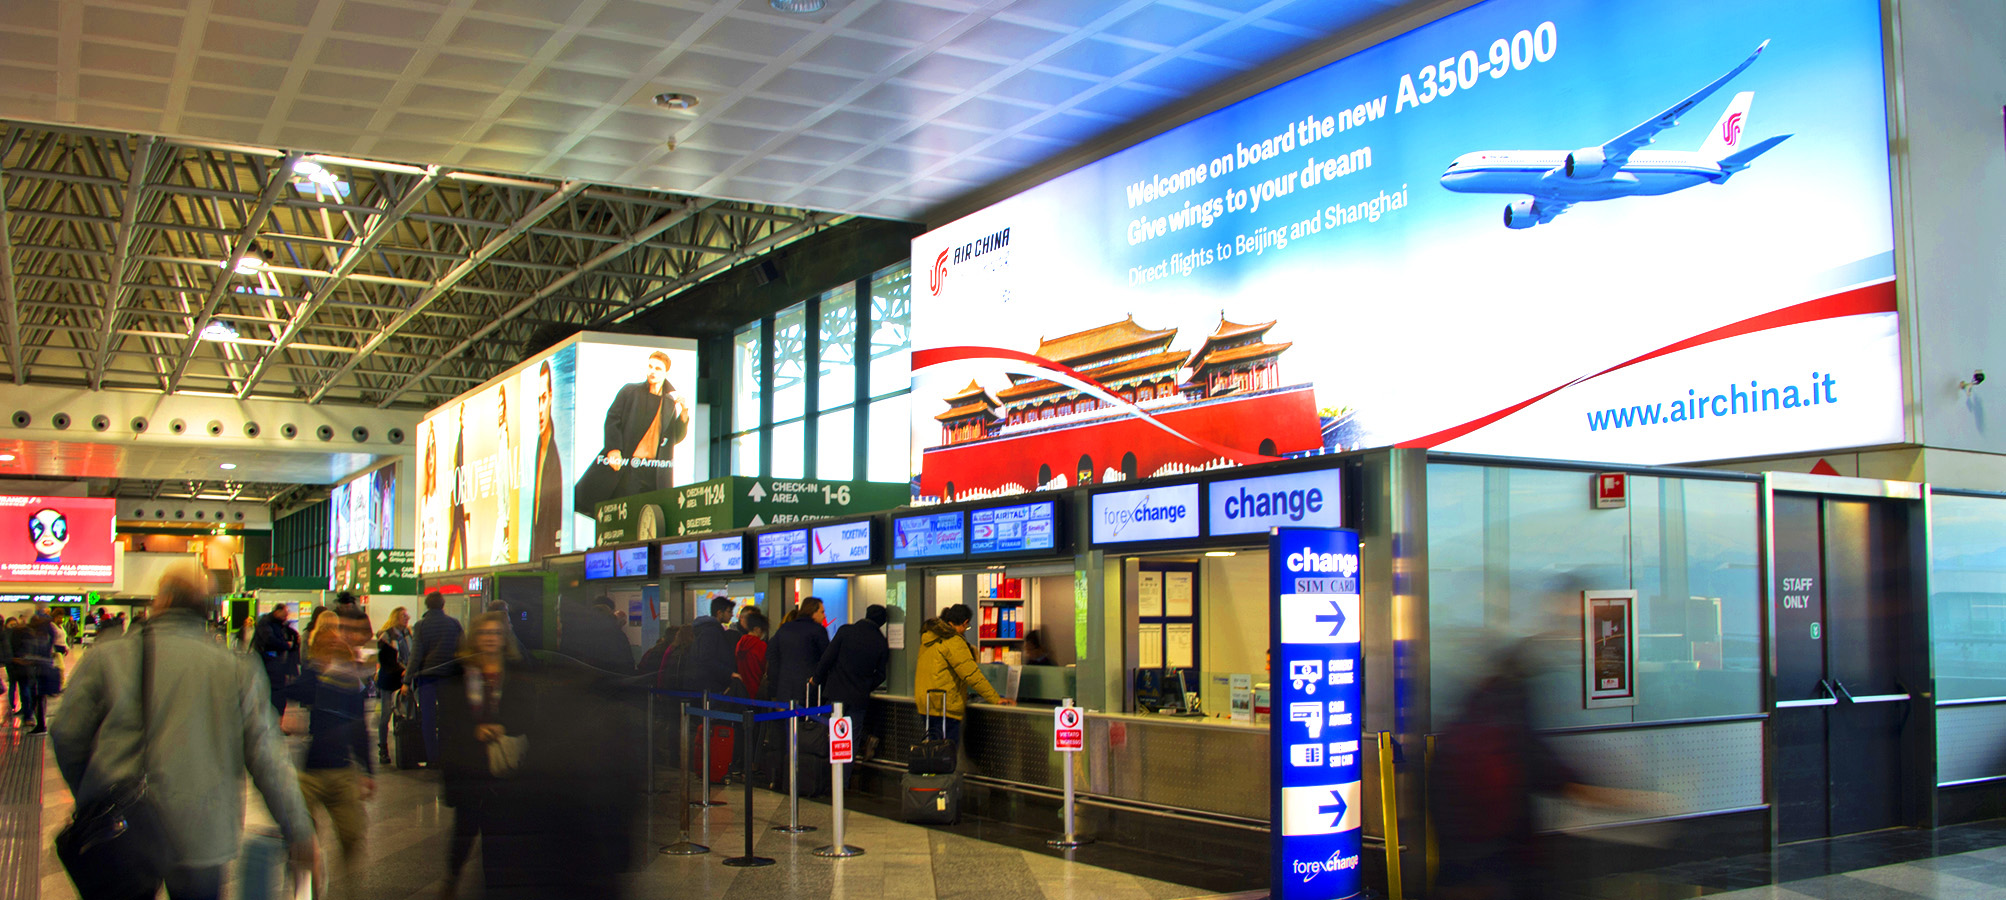 Air China airport advertising at Malpensa